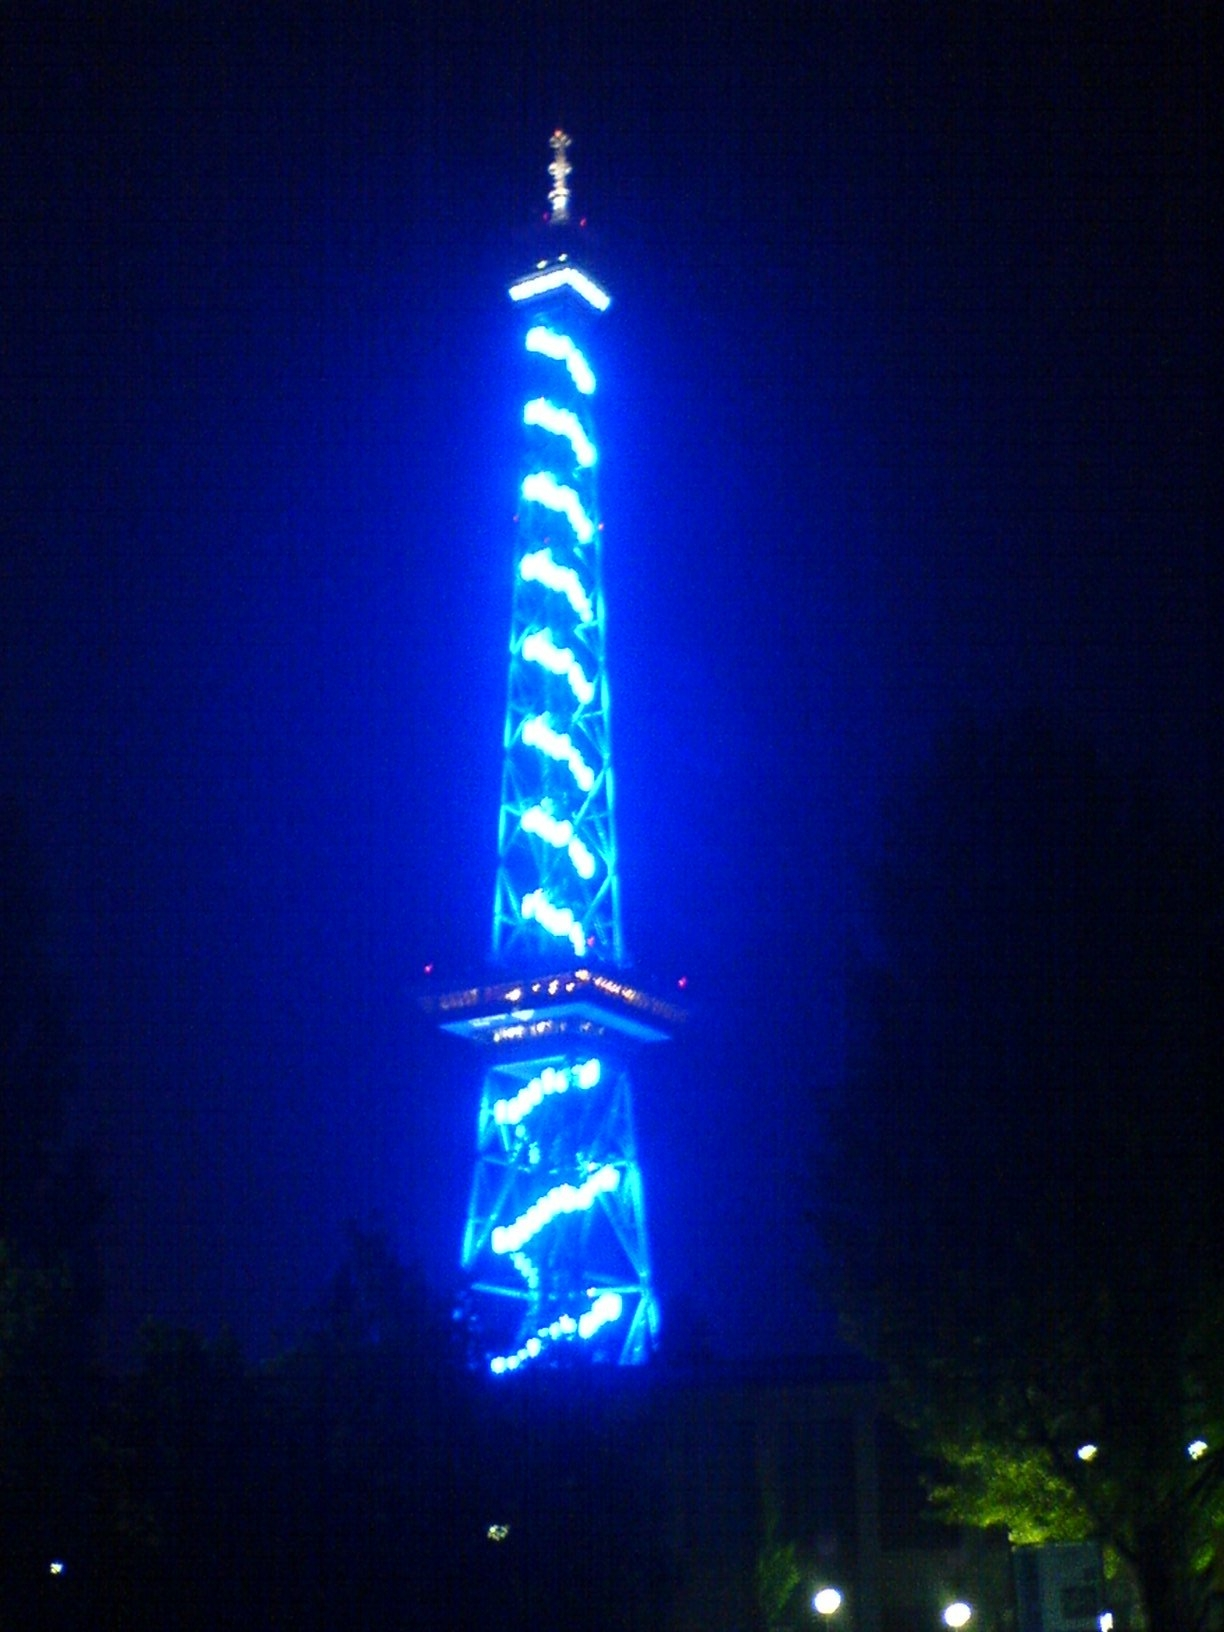 Berlin - Funkturm at night - blue illuminated.jpg